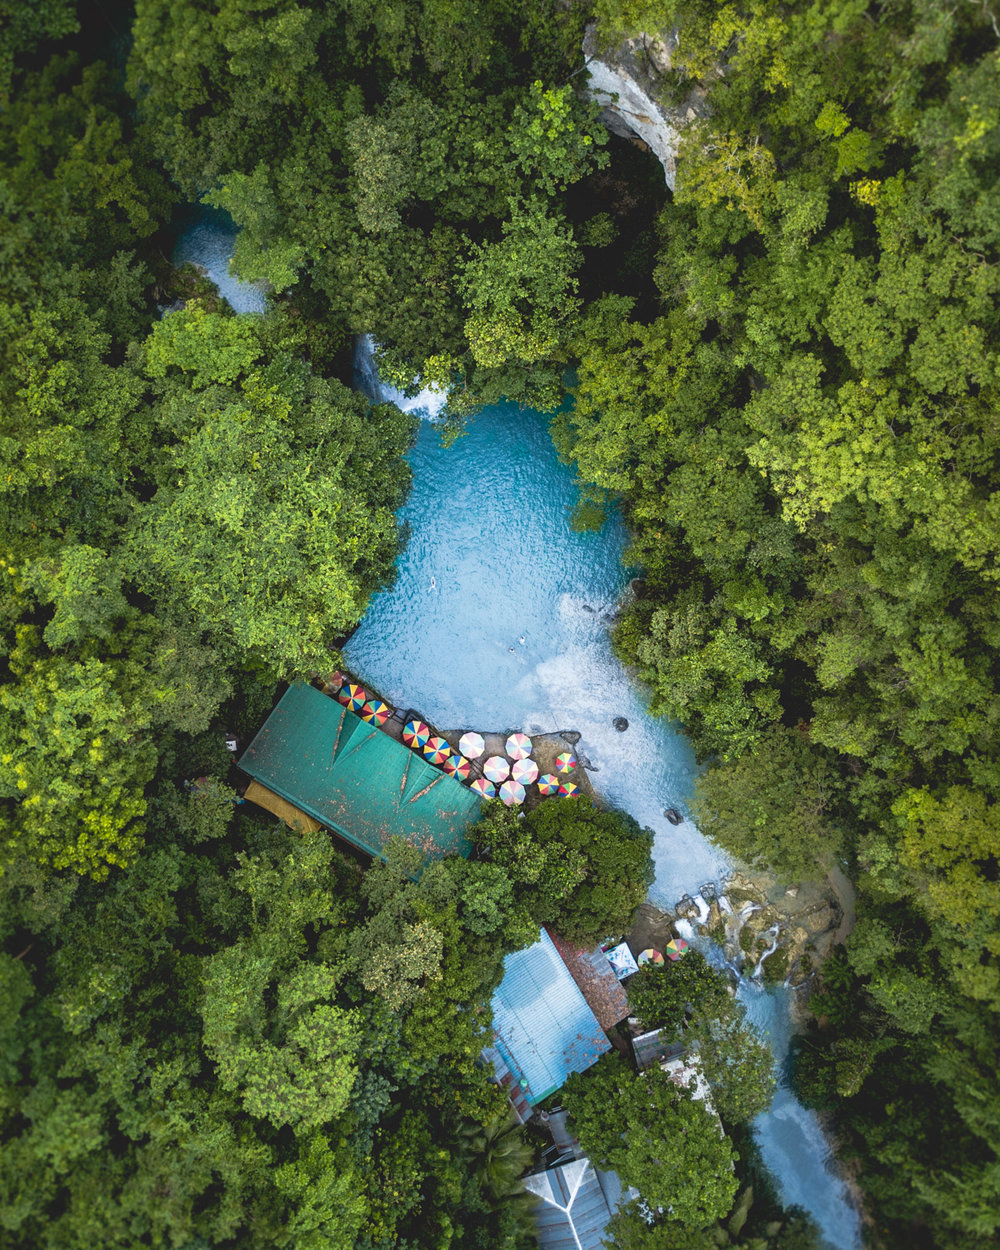 Drone photo of Kawasan Falls, Cebu, The Philippines